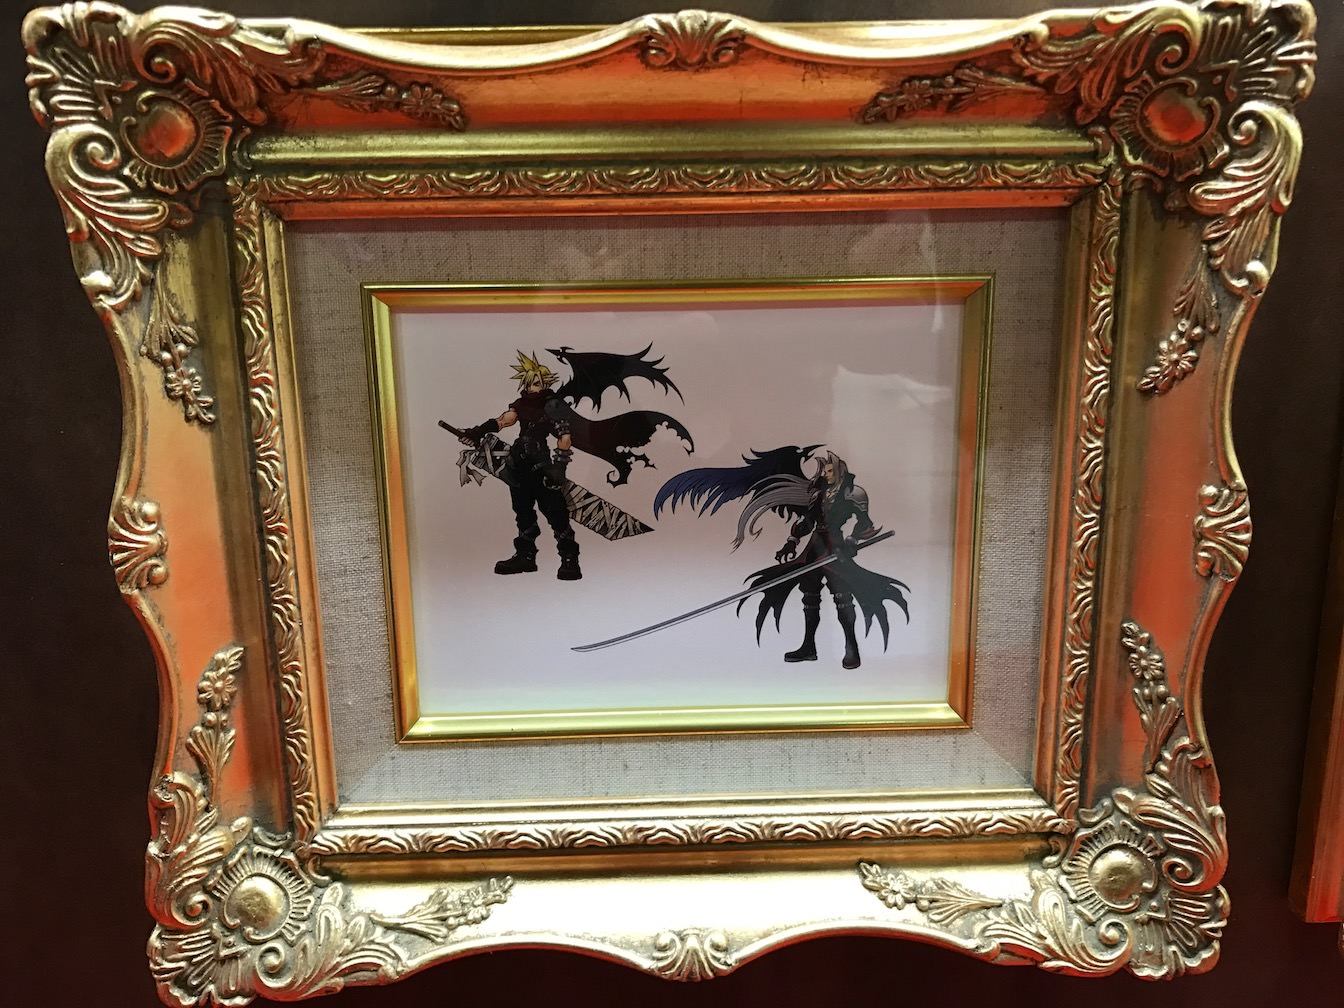 Kingdomhearts 15th anniversary exhibition at shinjuku 17